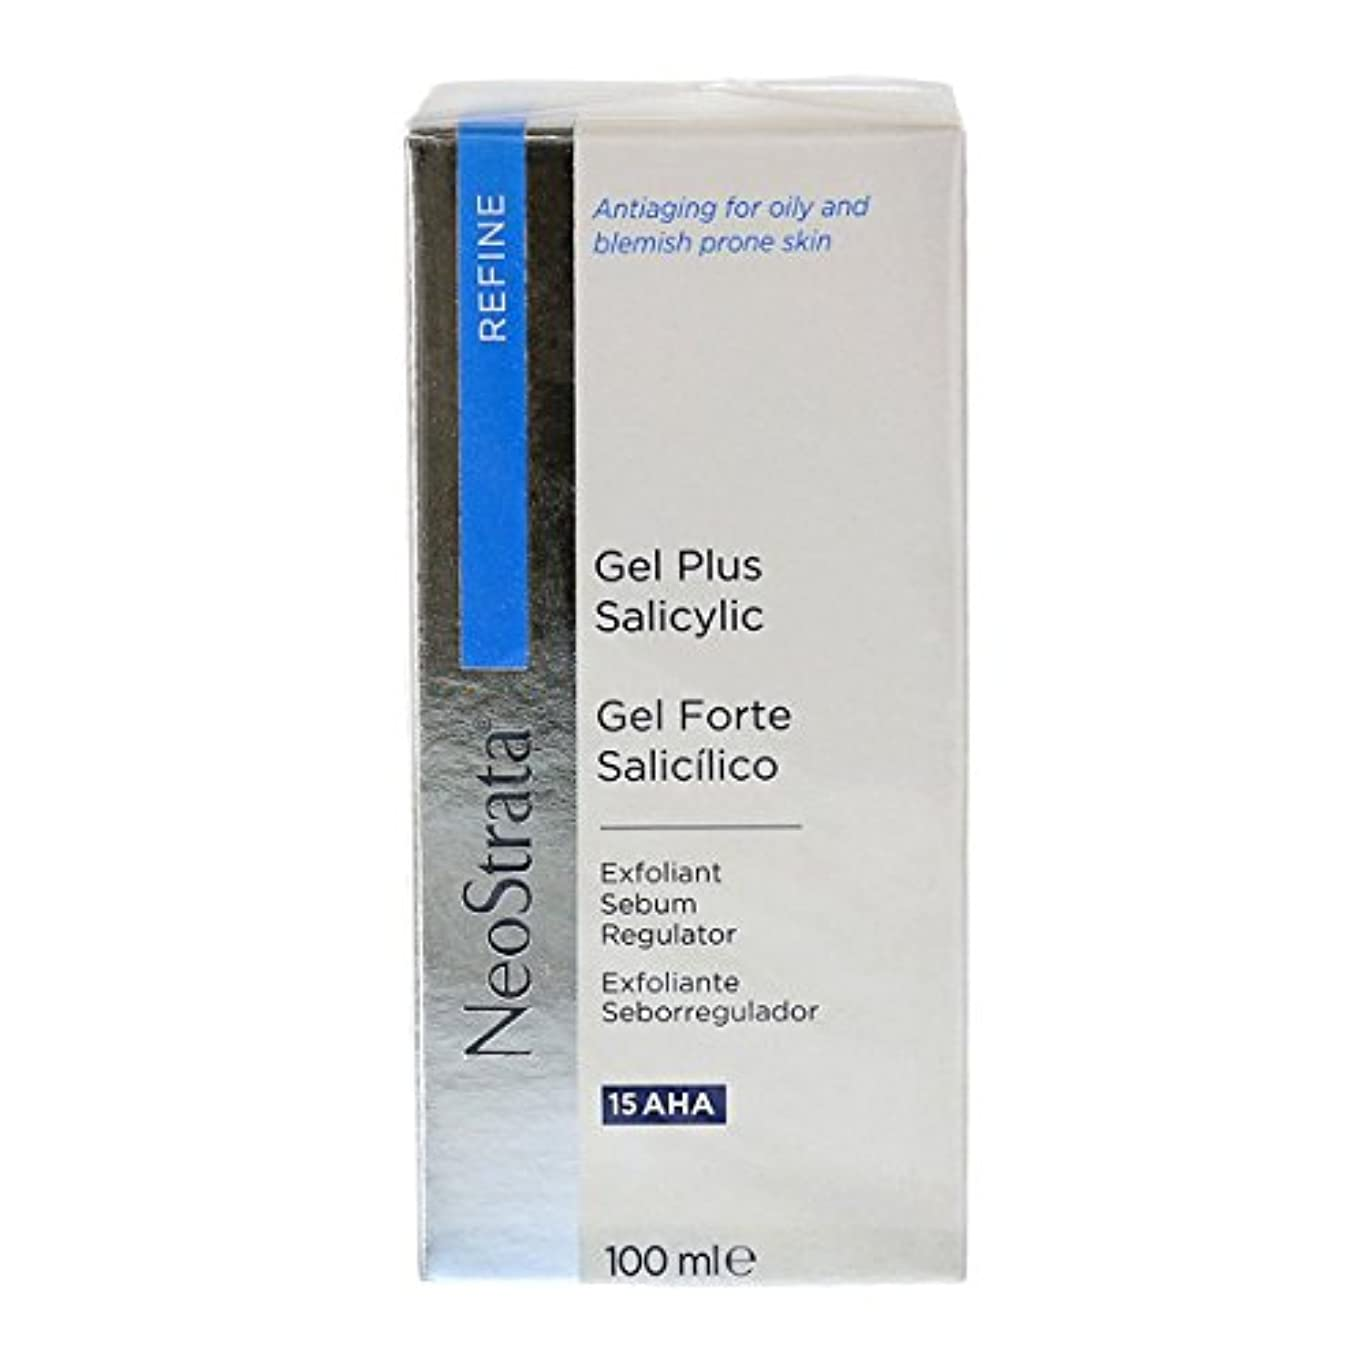 遺伝子無駄な要求するNeostrata Gel Plus Salicylic Exfoliant Sebum Regulator 100ml [並行輸入品]